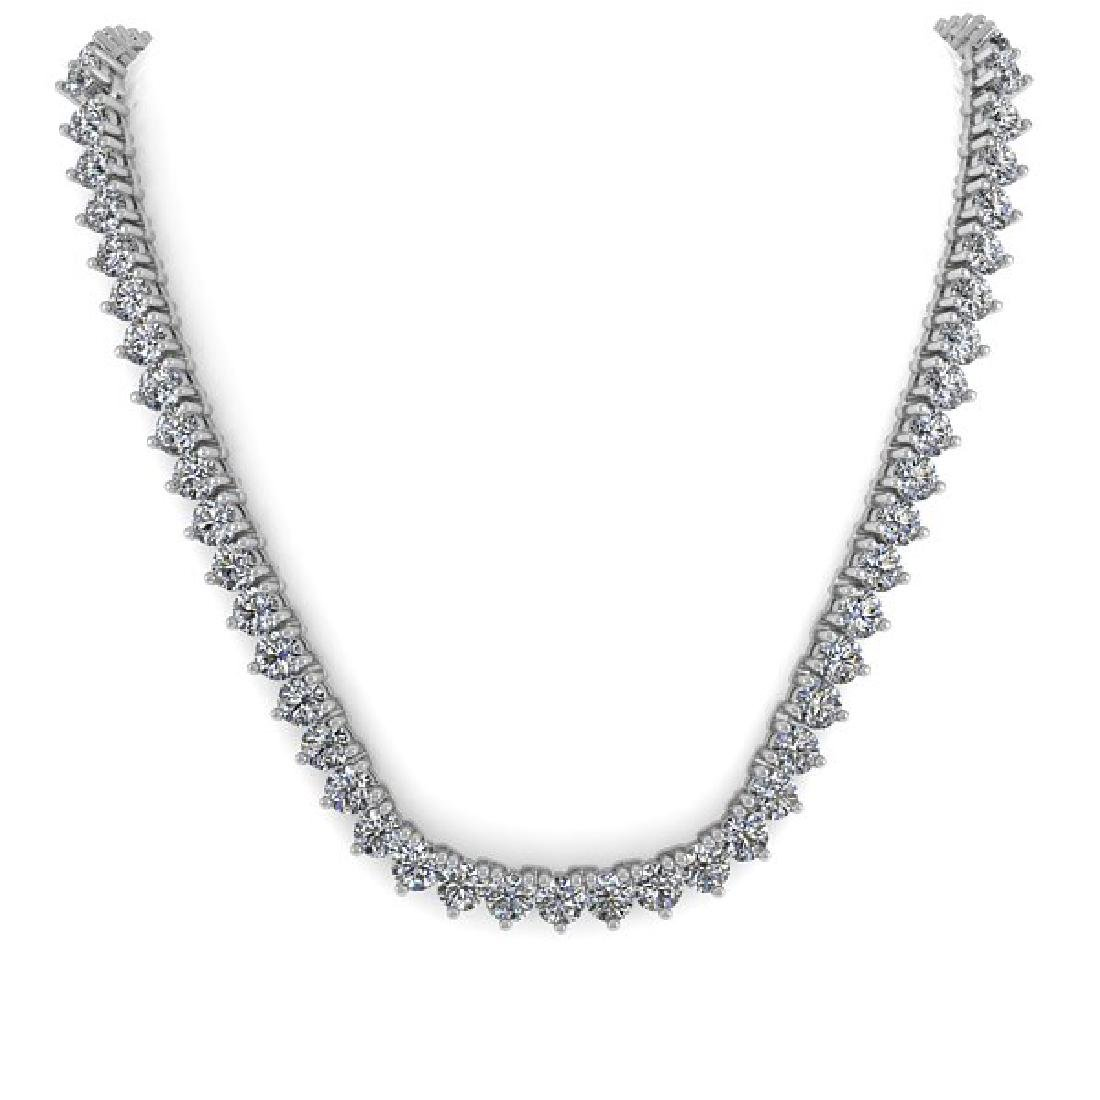 57 CTW Solitaire Certified SI Diamond Necklace 18K - 3